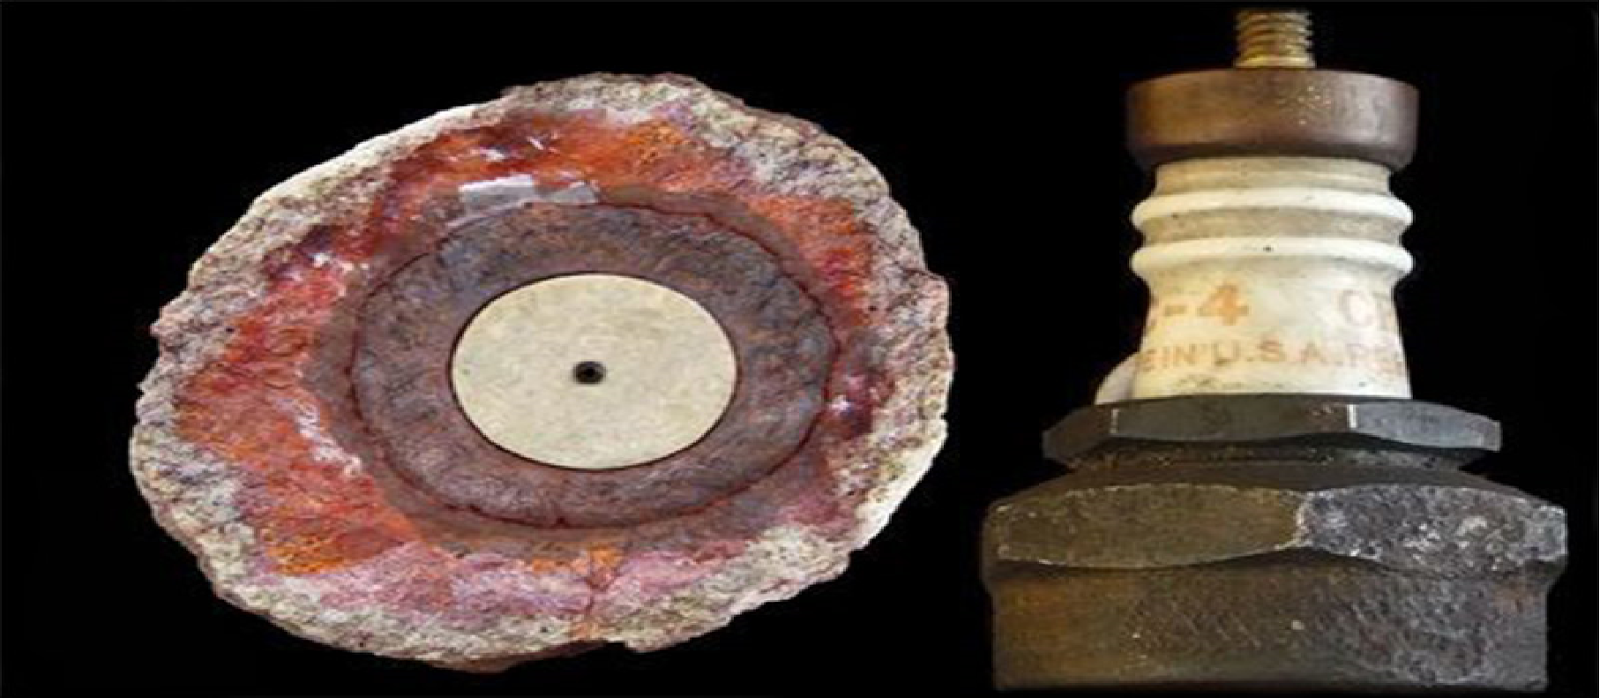 AWAKENING FOR ALL: Coso artifact: A 500,000 year old Spark ...